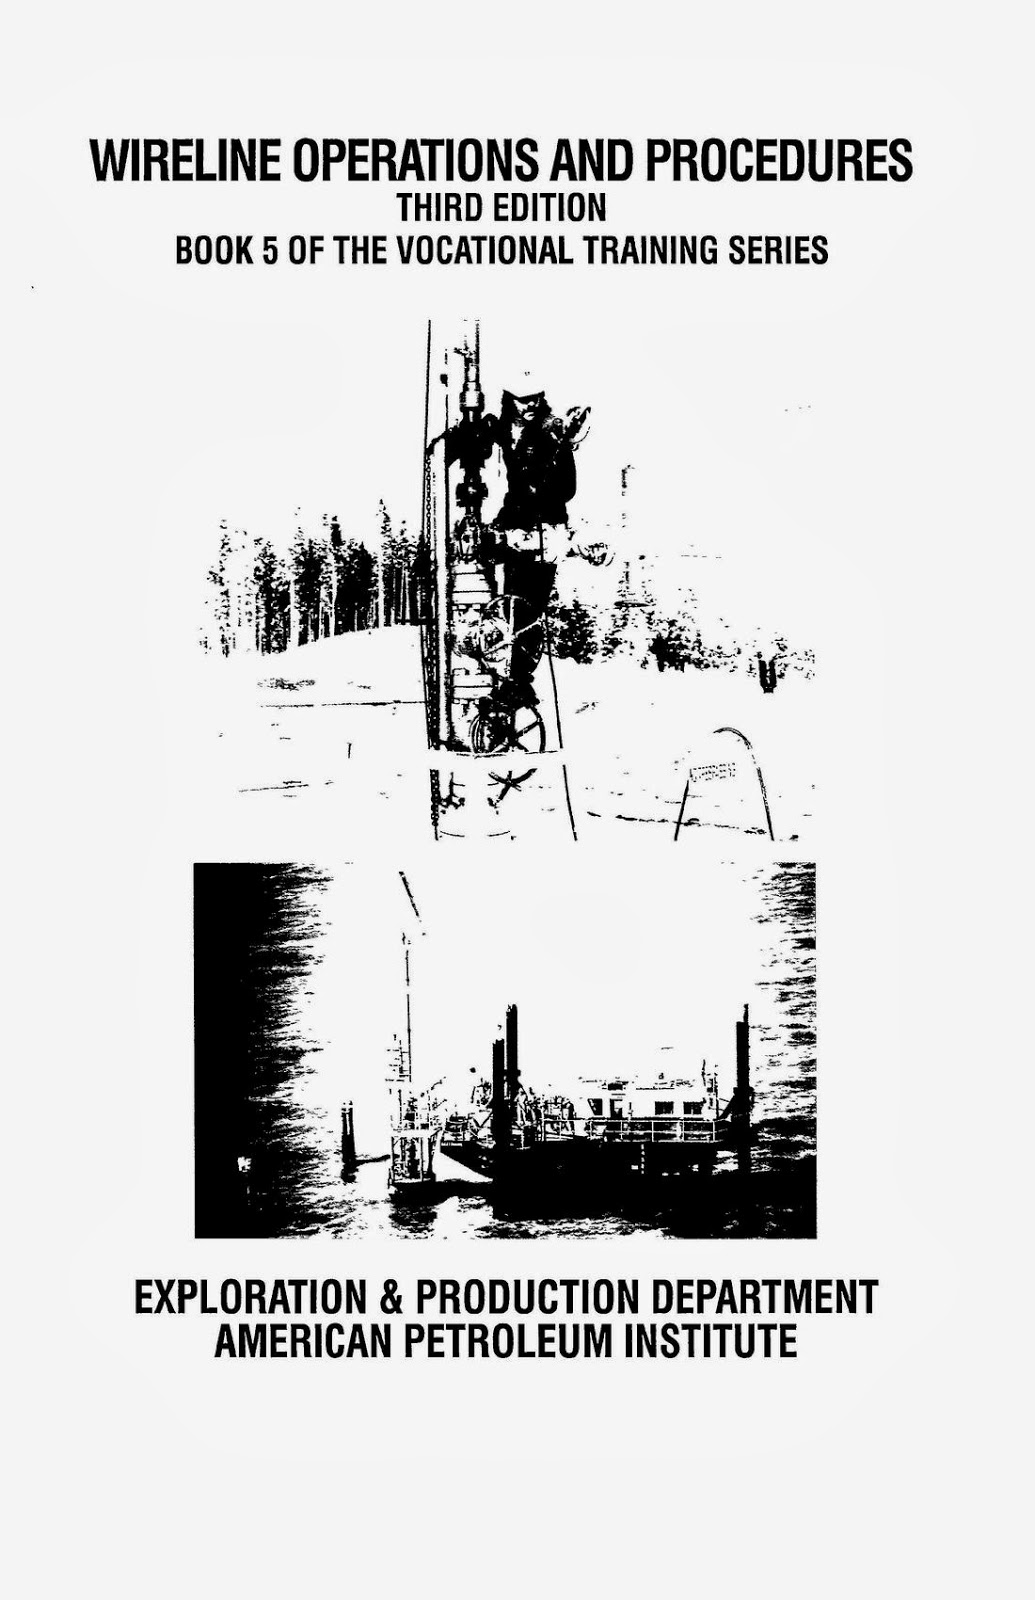 Slickline Operations & Procedures ~ Oil and Gas Book Reference